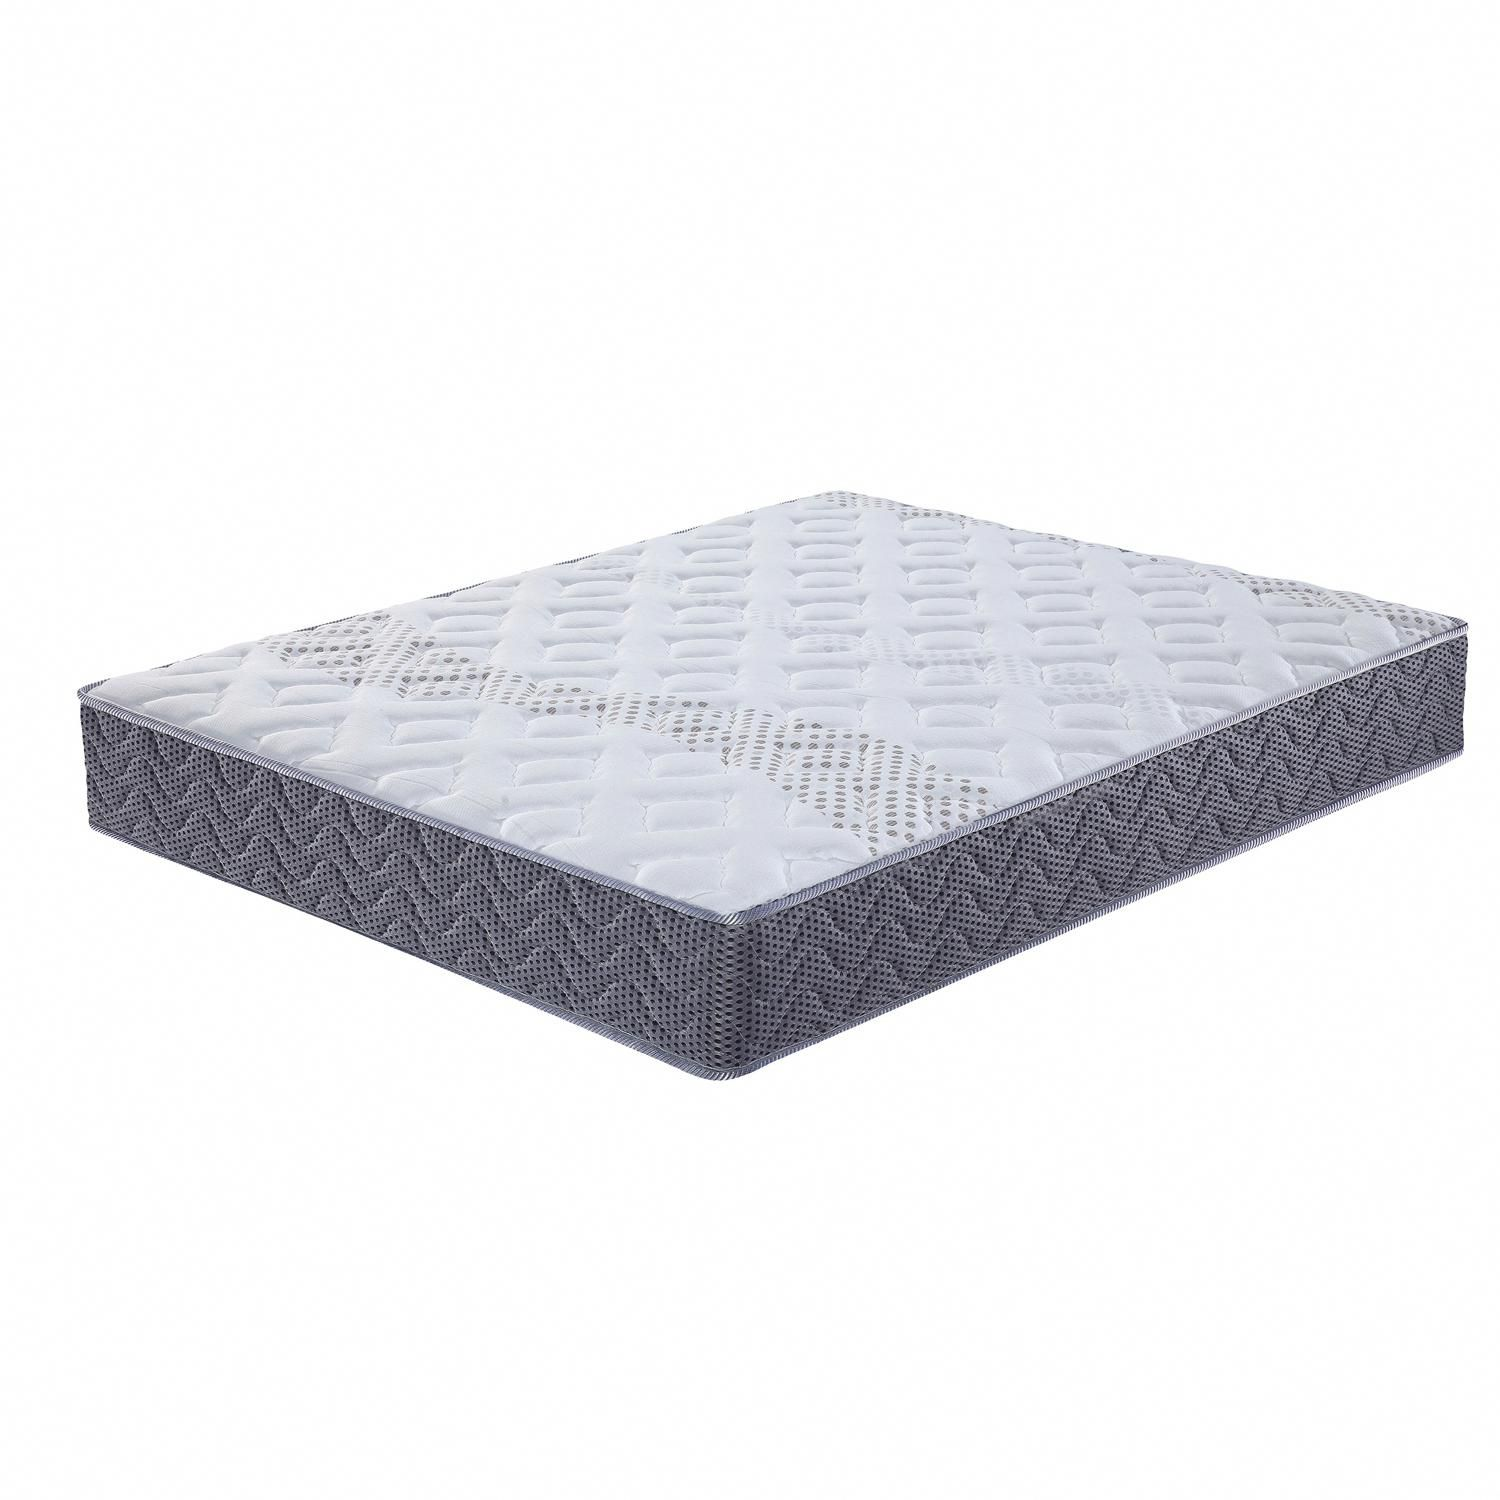 Memory Foam Mattress Queen Foam Mattress King Frame